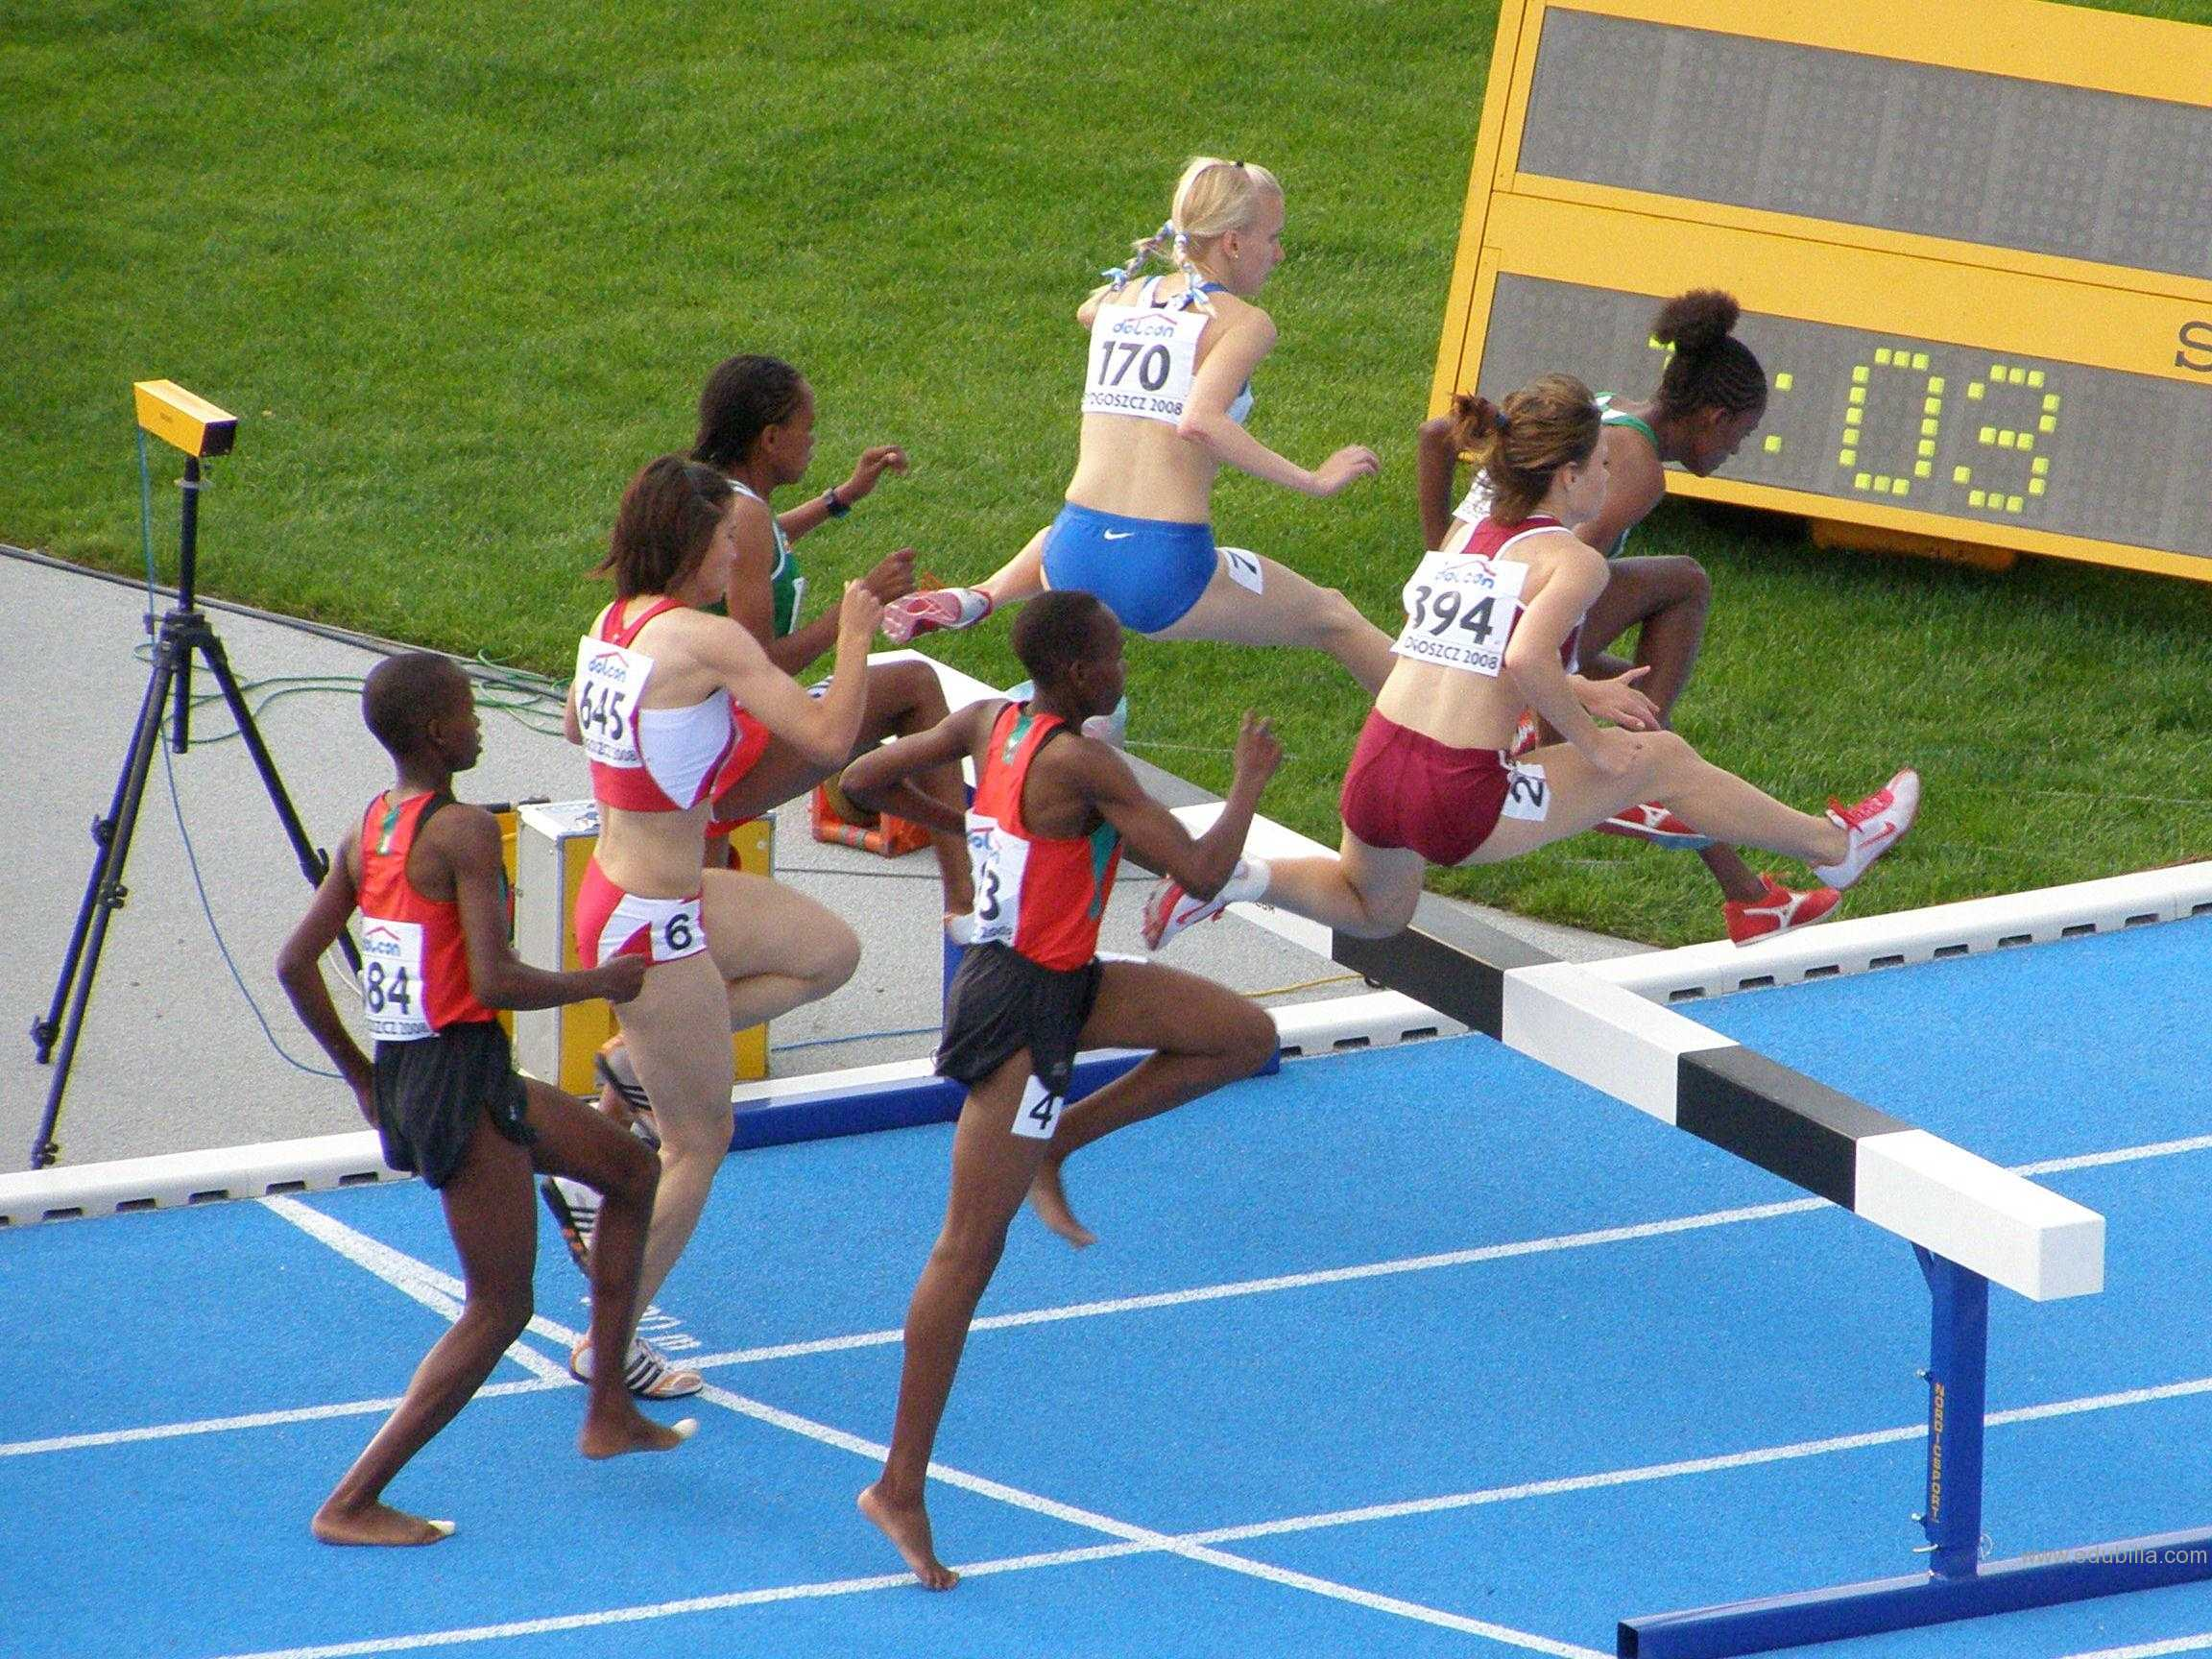 steeplechaseathletics1.jpg